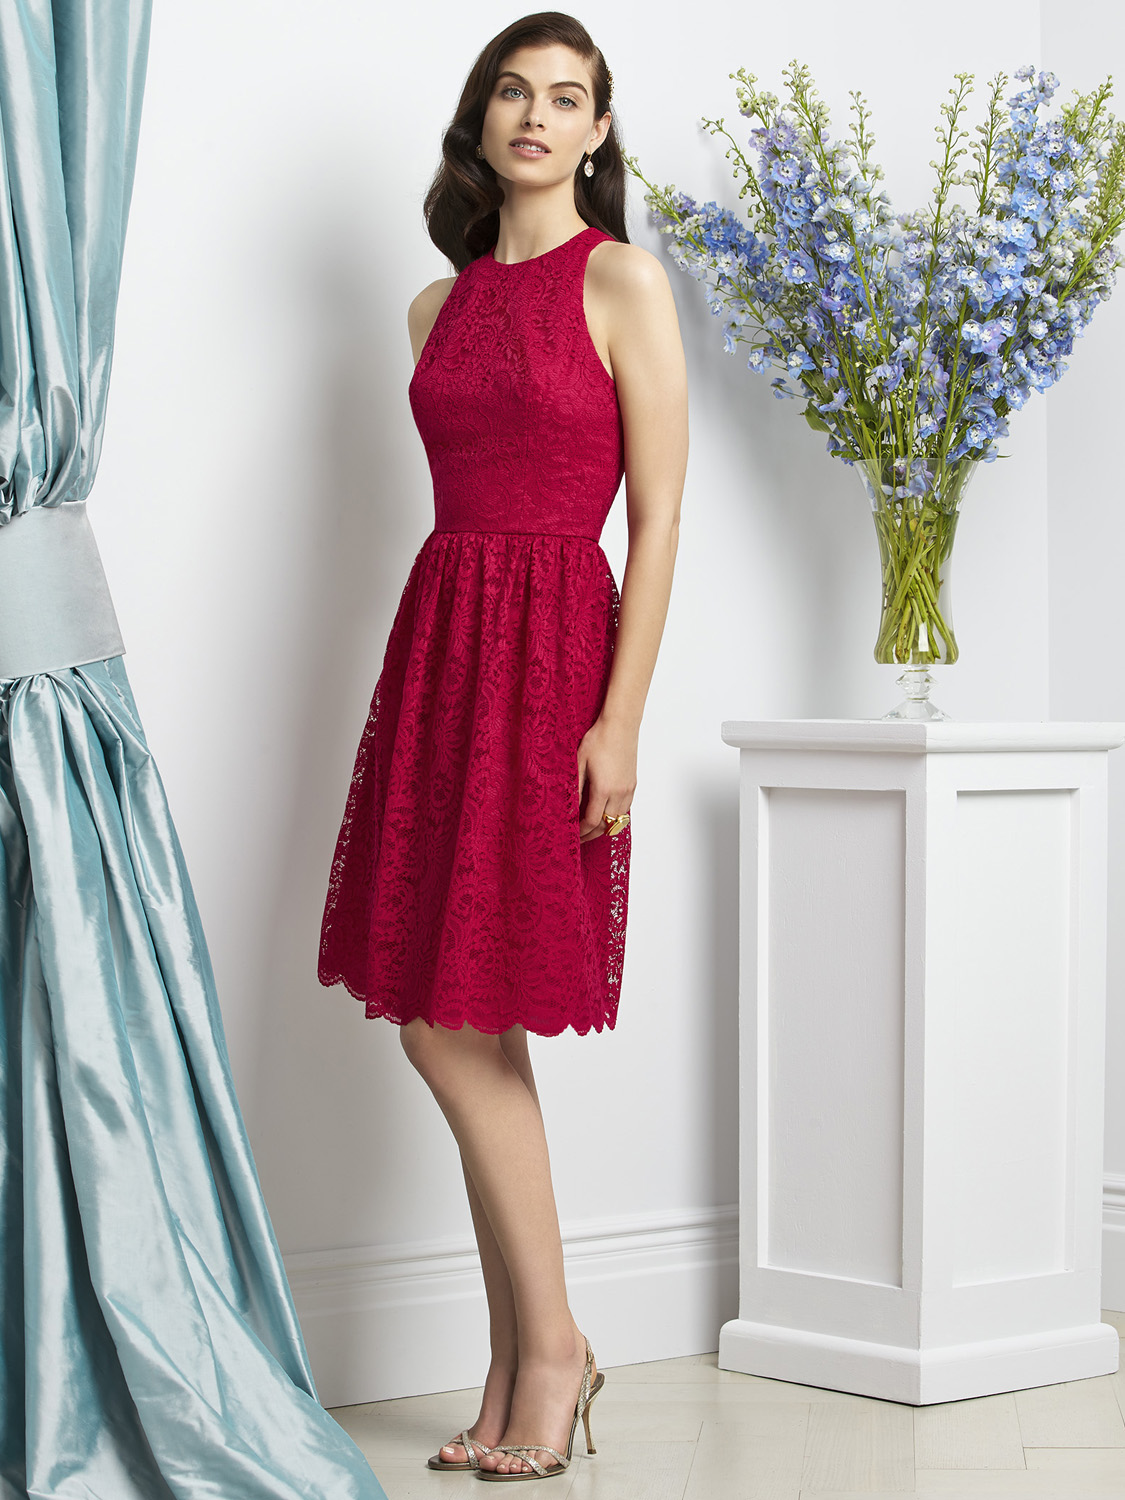 Bridesmaid day sunday 7th june butterfly bridal boutique dessy bridesmaid dresses oxford 2938front 2939front 2940front 6709front 6710front 6713front ombrellifo Images